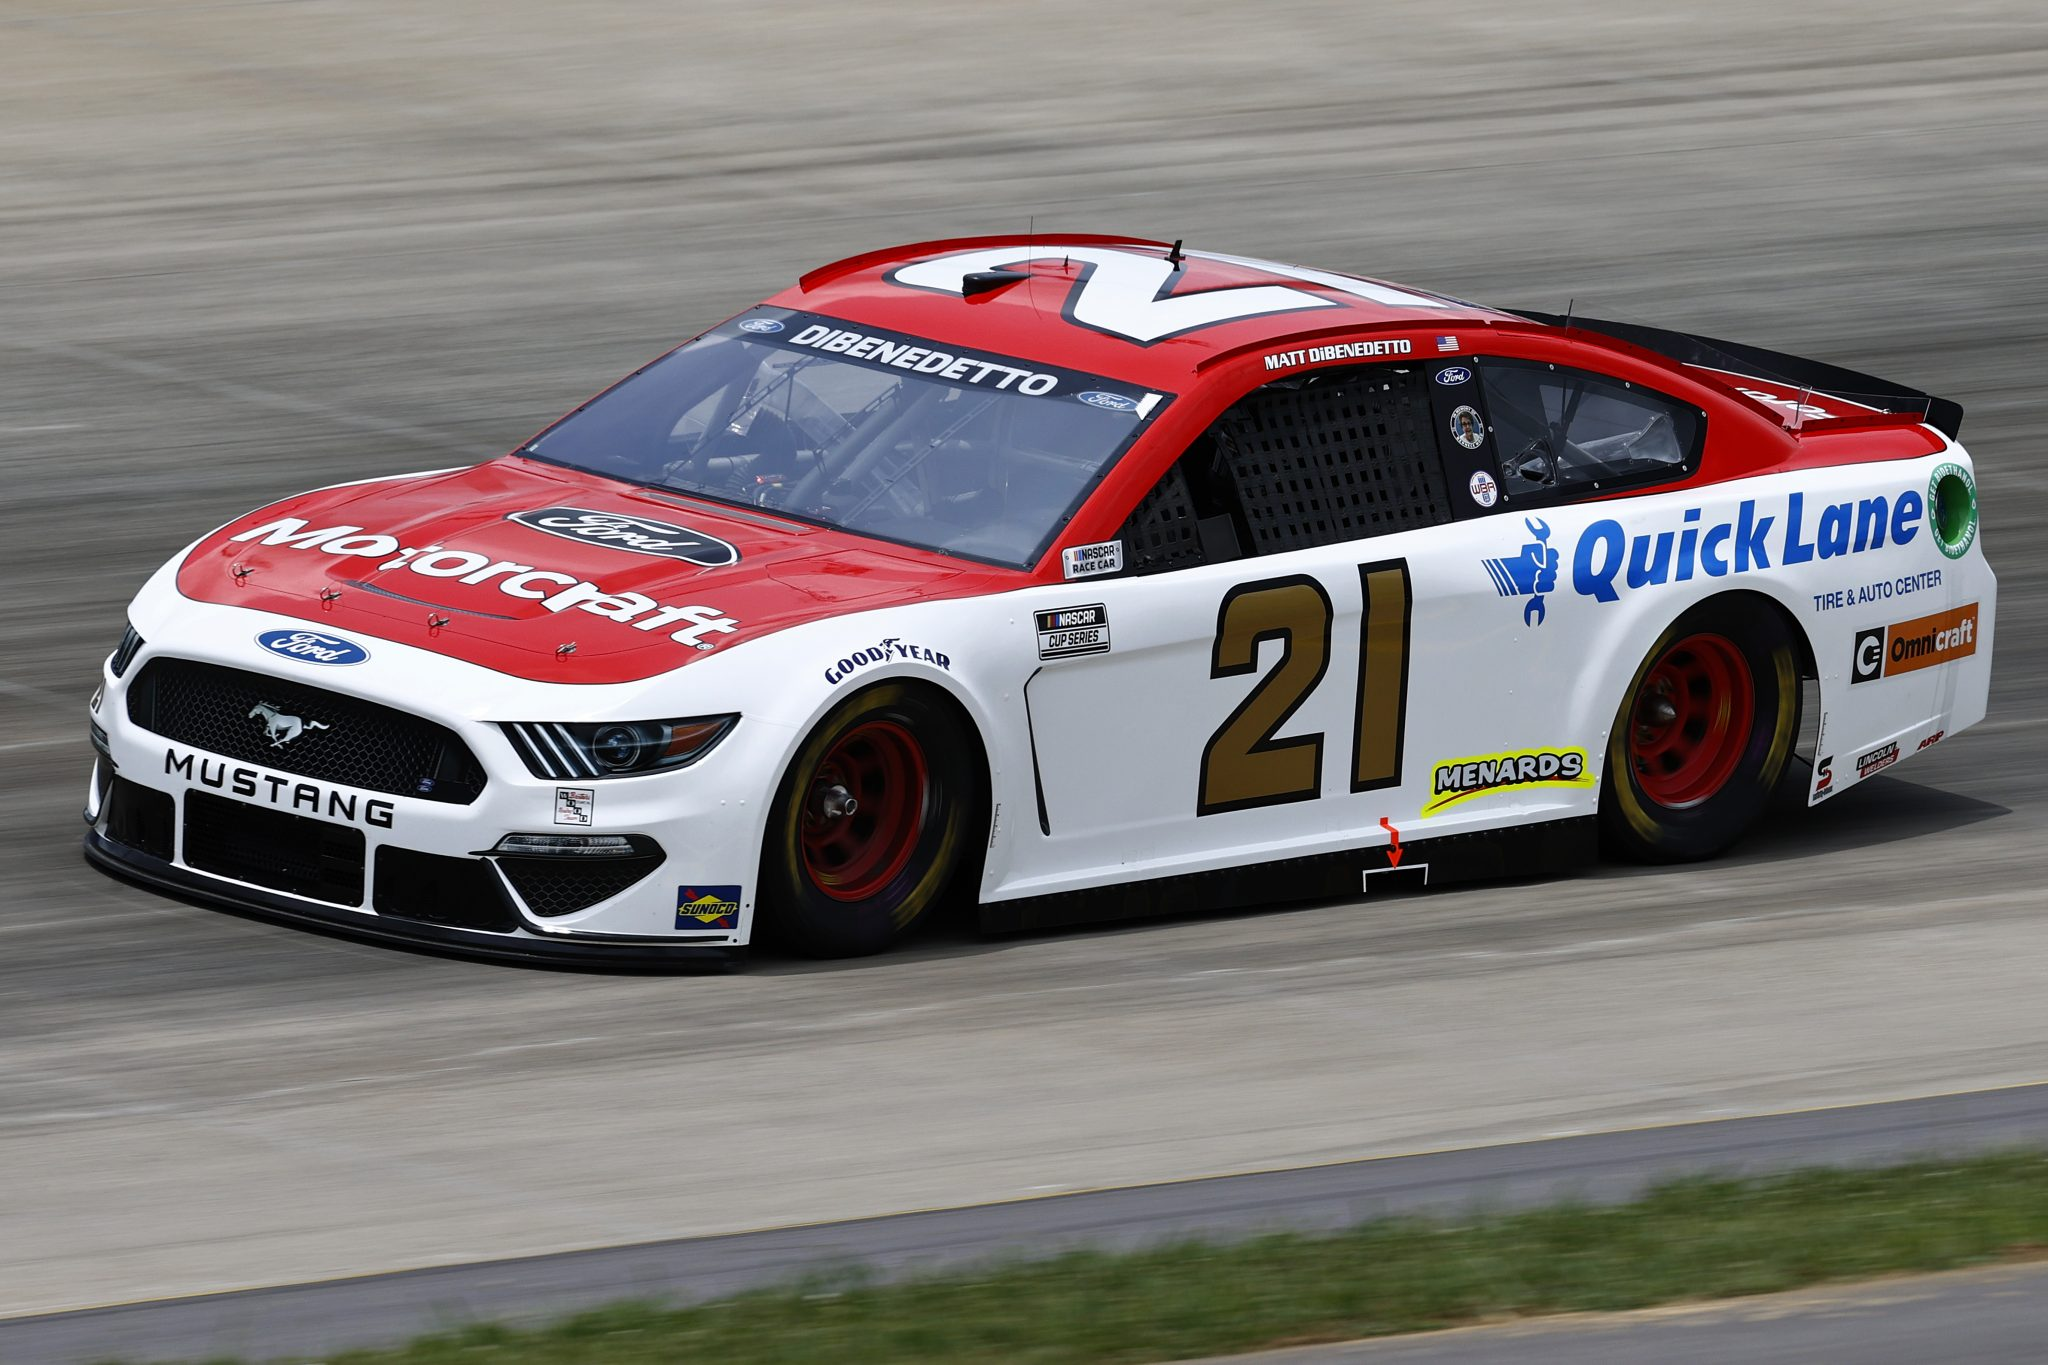 LEBANON, TENNESSEE - JUNE 19: Matt DiBenedetto, driver of the #21 Motorcraft/Quick Lane Ford, drives during practice for the NASCAR Cup Series Ally 400 at Nashville Superspeedway on June 19, 2021 in Lebanon, Tennessee. (Photo by Jared C. Tilton/Getty Images)   Getty Images